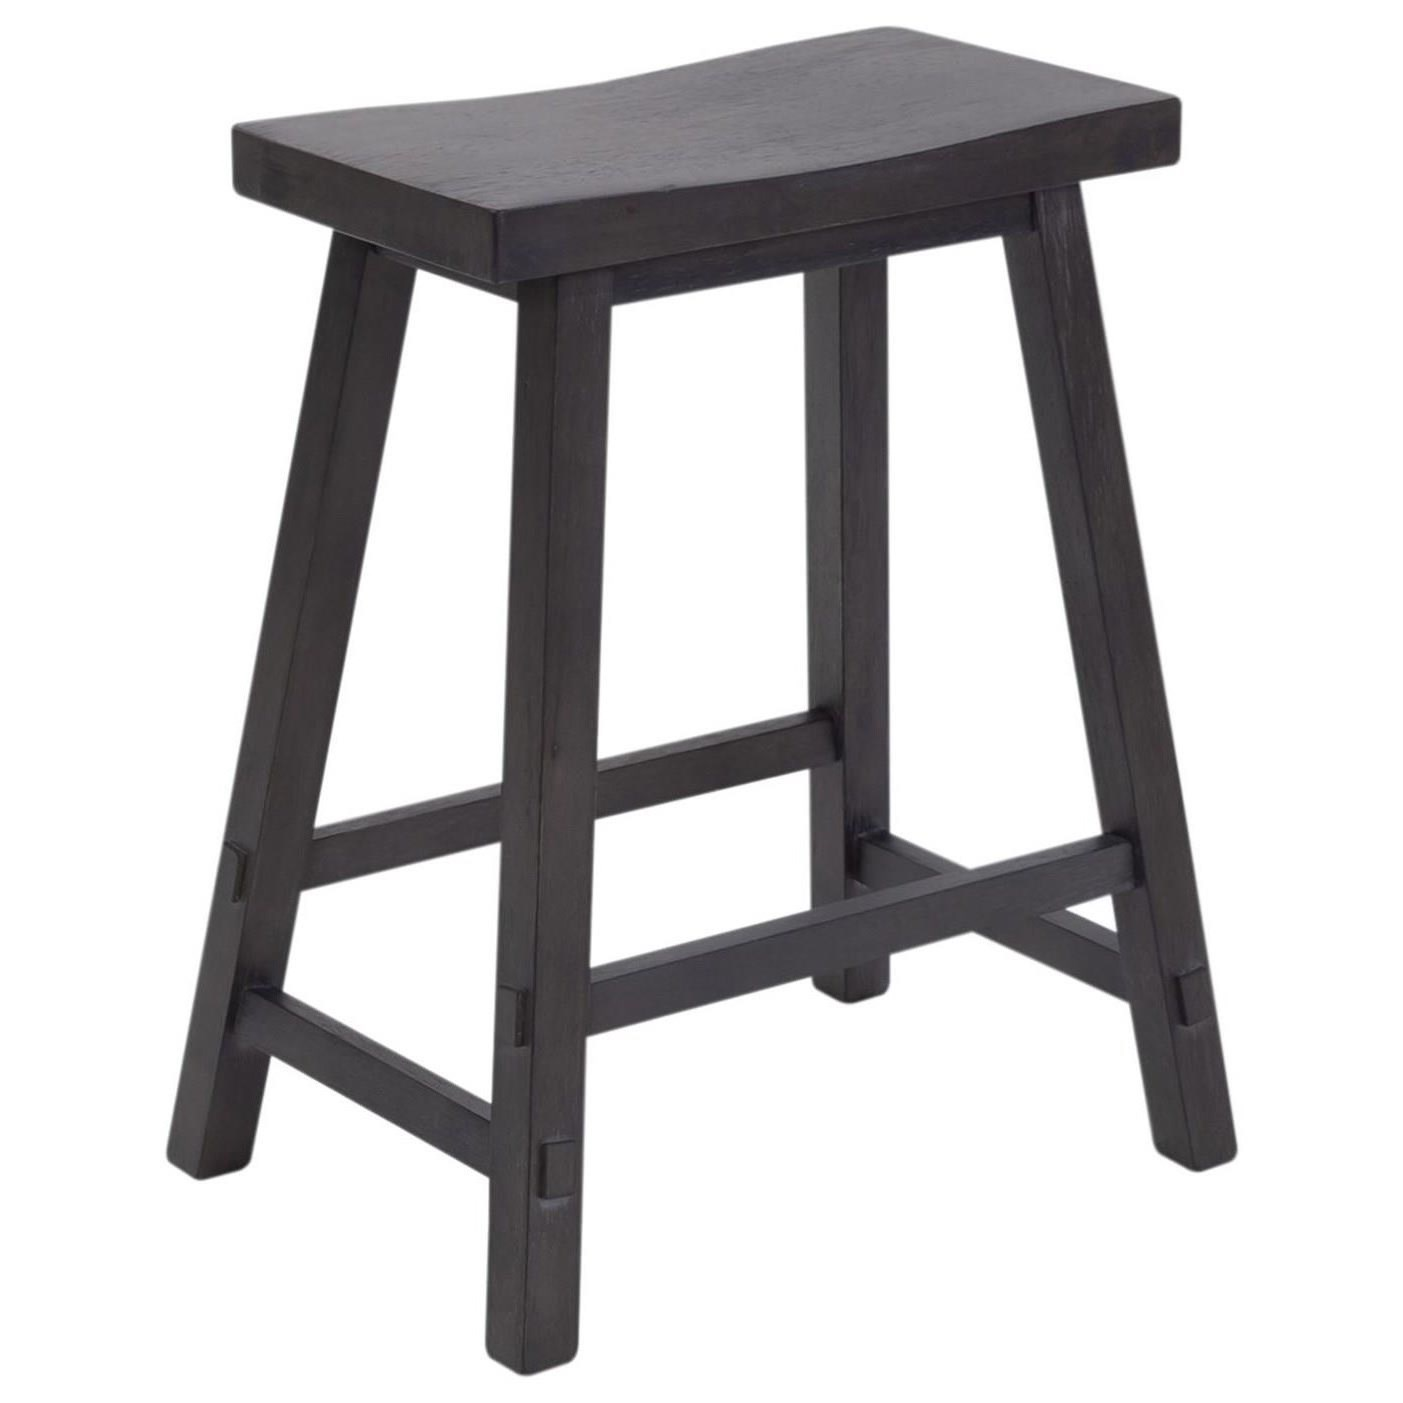 Creations II 24 Inch Sawhorse Barstool by Liberty Furniture at Northeast Factory Direct